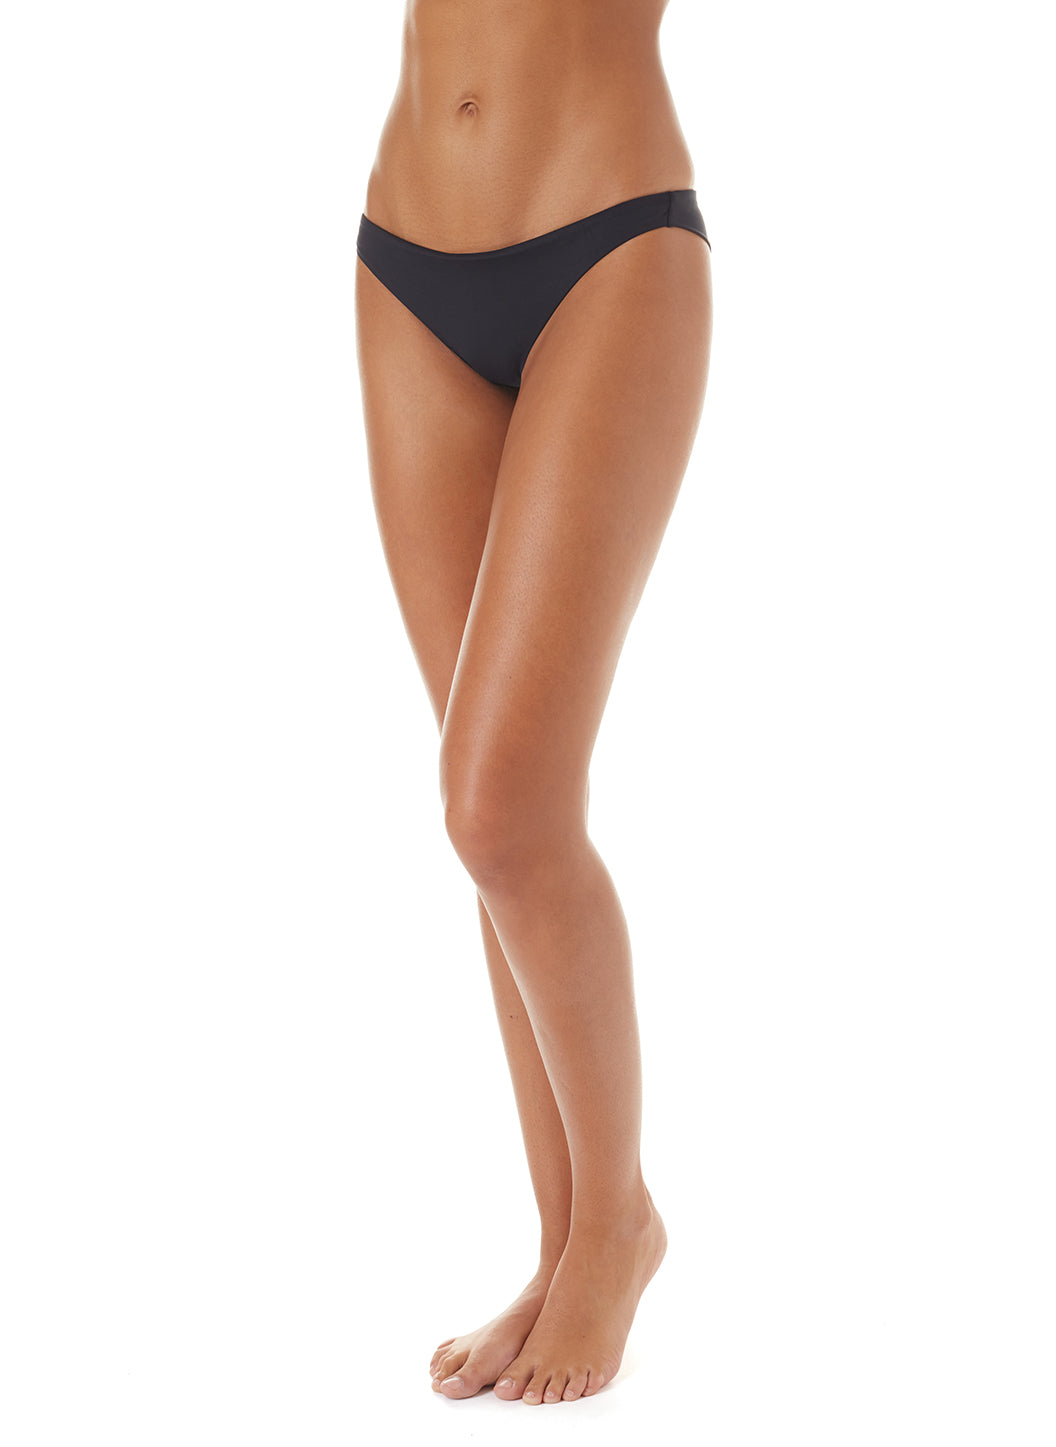 Exclusive Sisi Black Small Bikini Bottoms